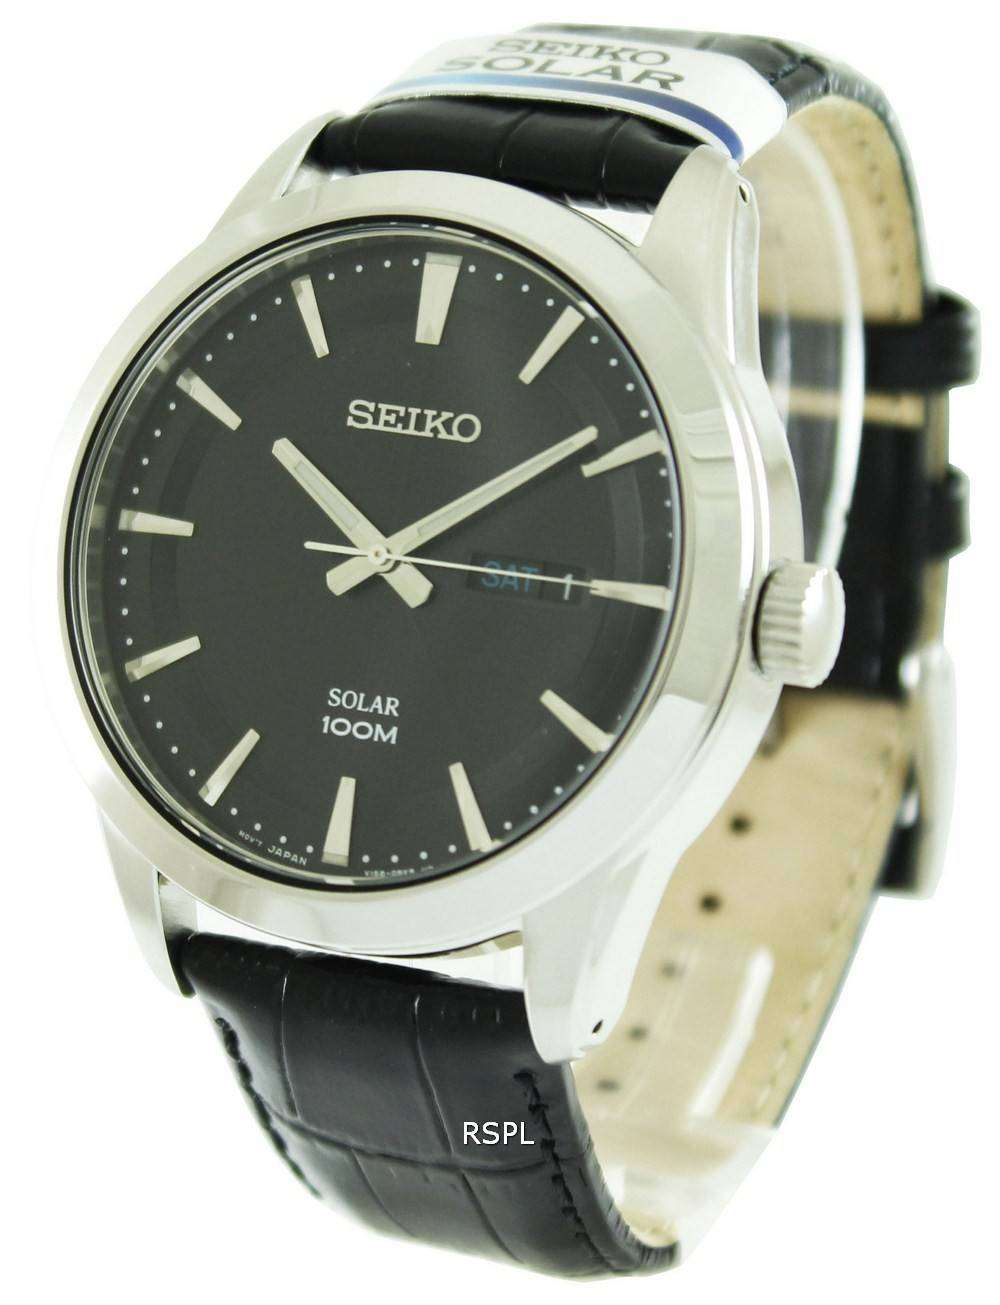 Seiko solar powered 100m sne363p2 mens watch downunderwatches for Solar power watches